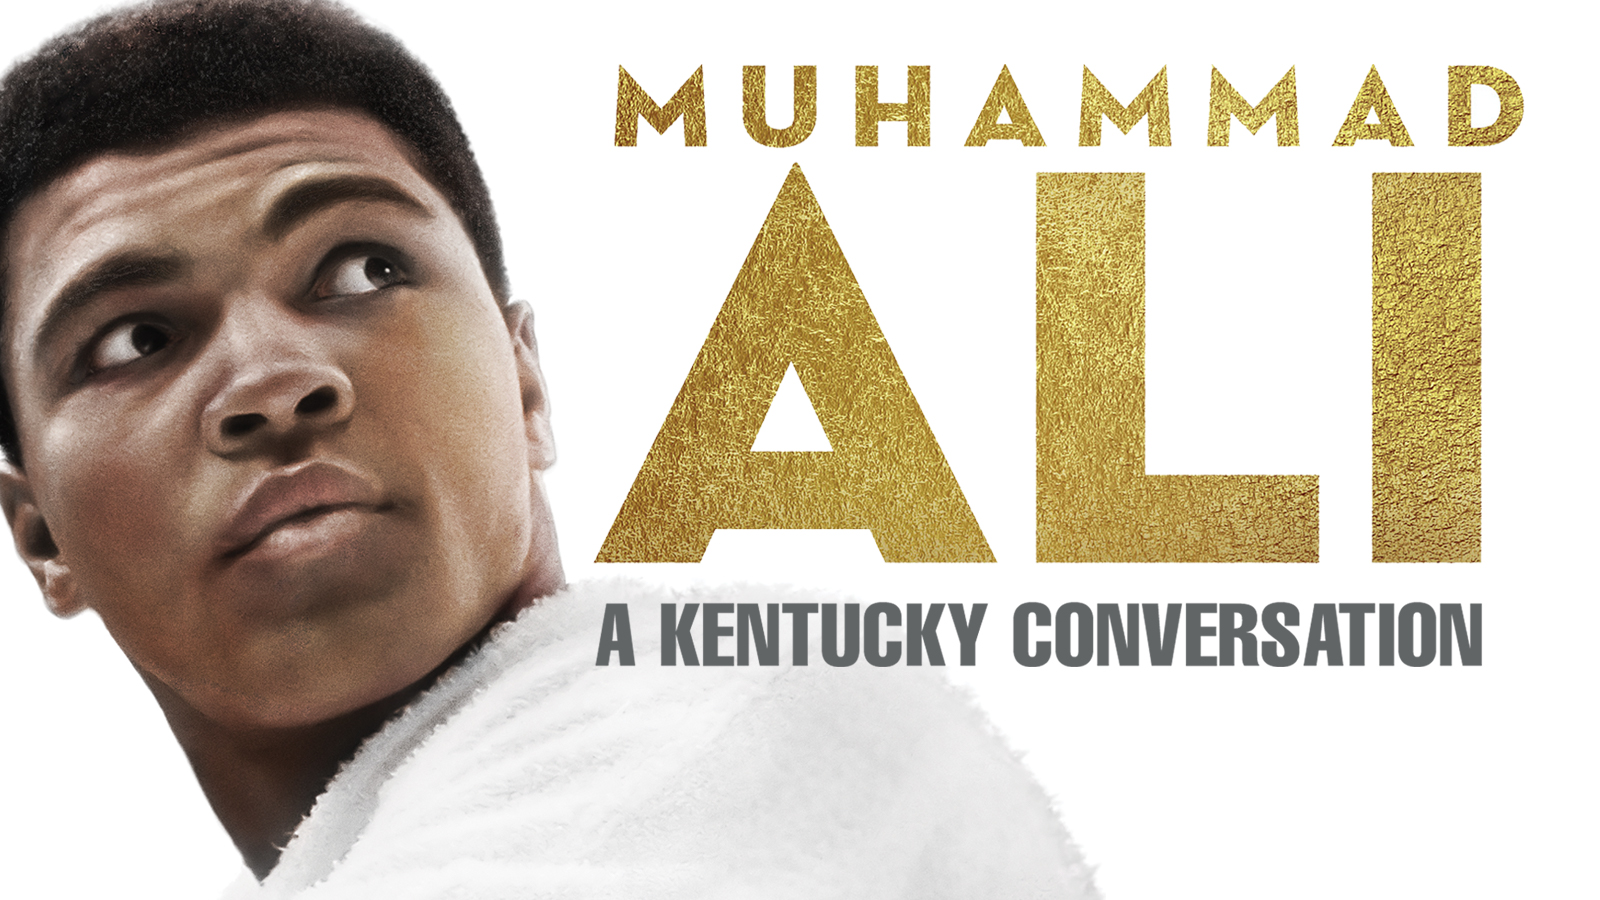 A close-up of Muhammad Ali looking back over his left shoulder along with the Muhammad Ali logo in gold and the words A KENTUCKY CONVERSATION.